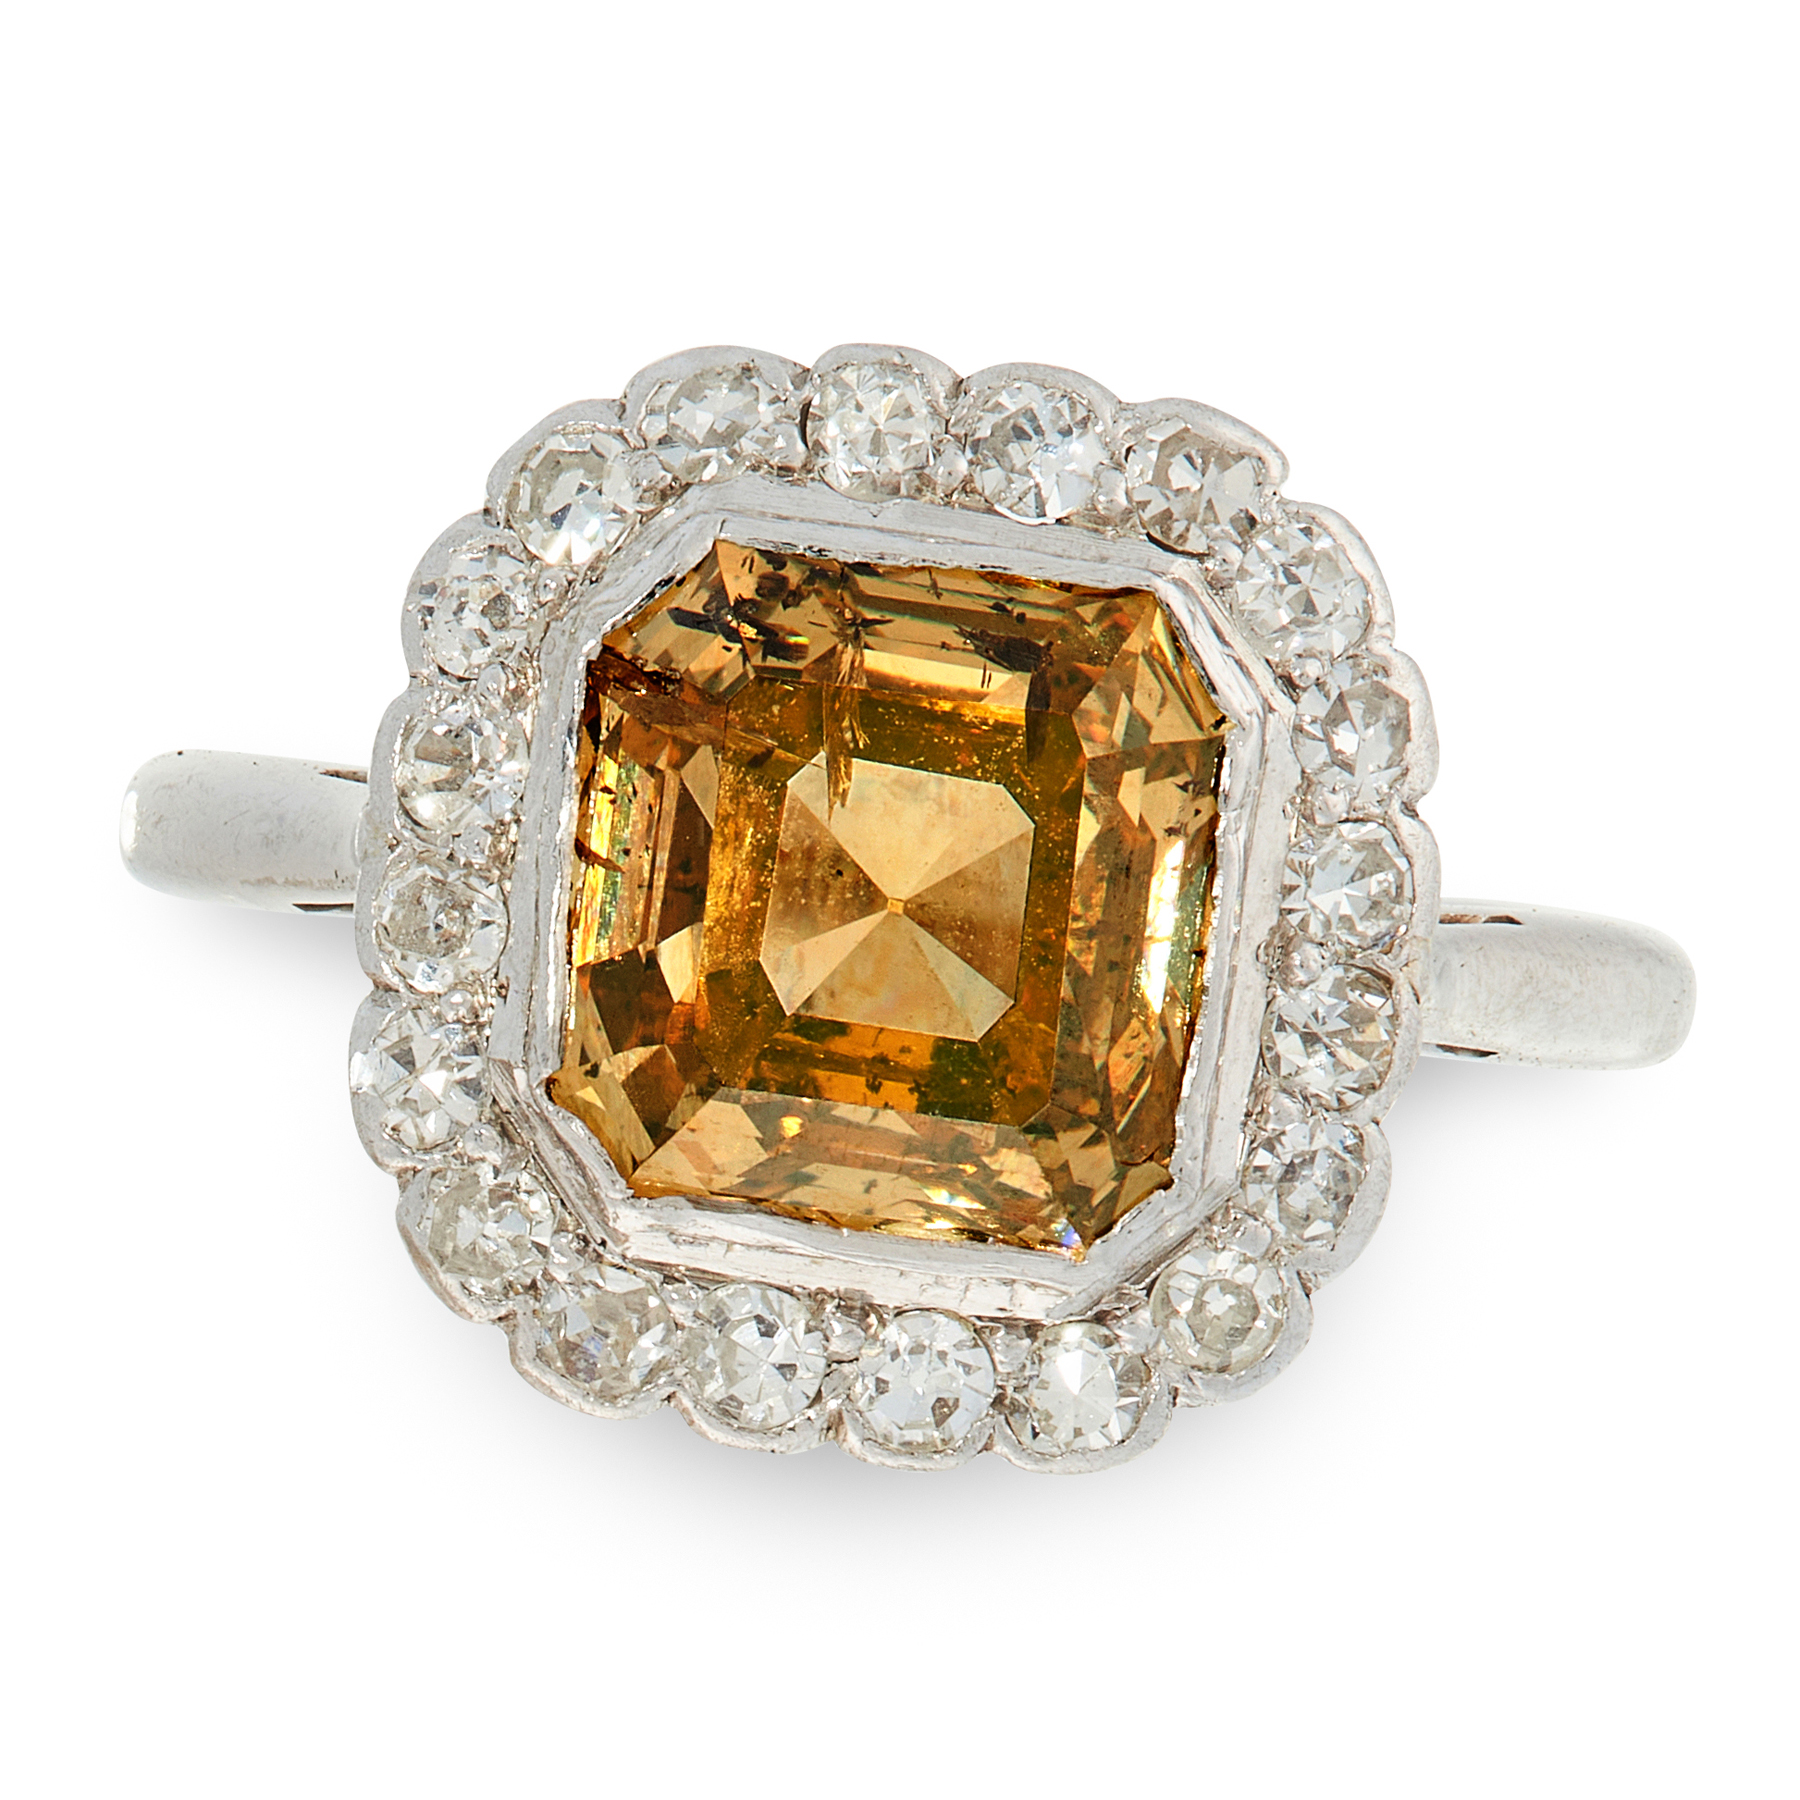 A YELLOW DIAMOND AND WHITE DIAMOND RING in 18ct white gold and platinum, set with an asscher cut